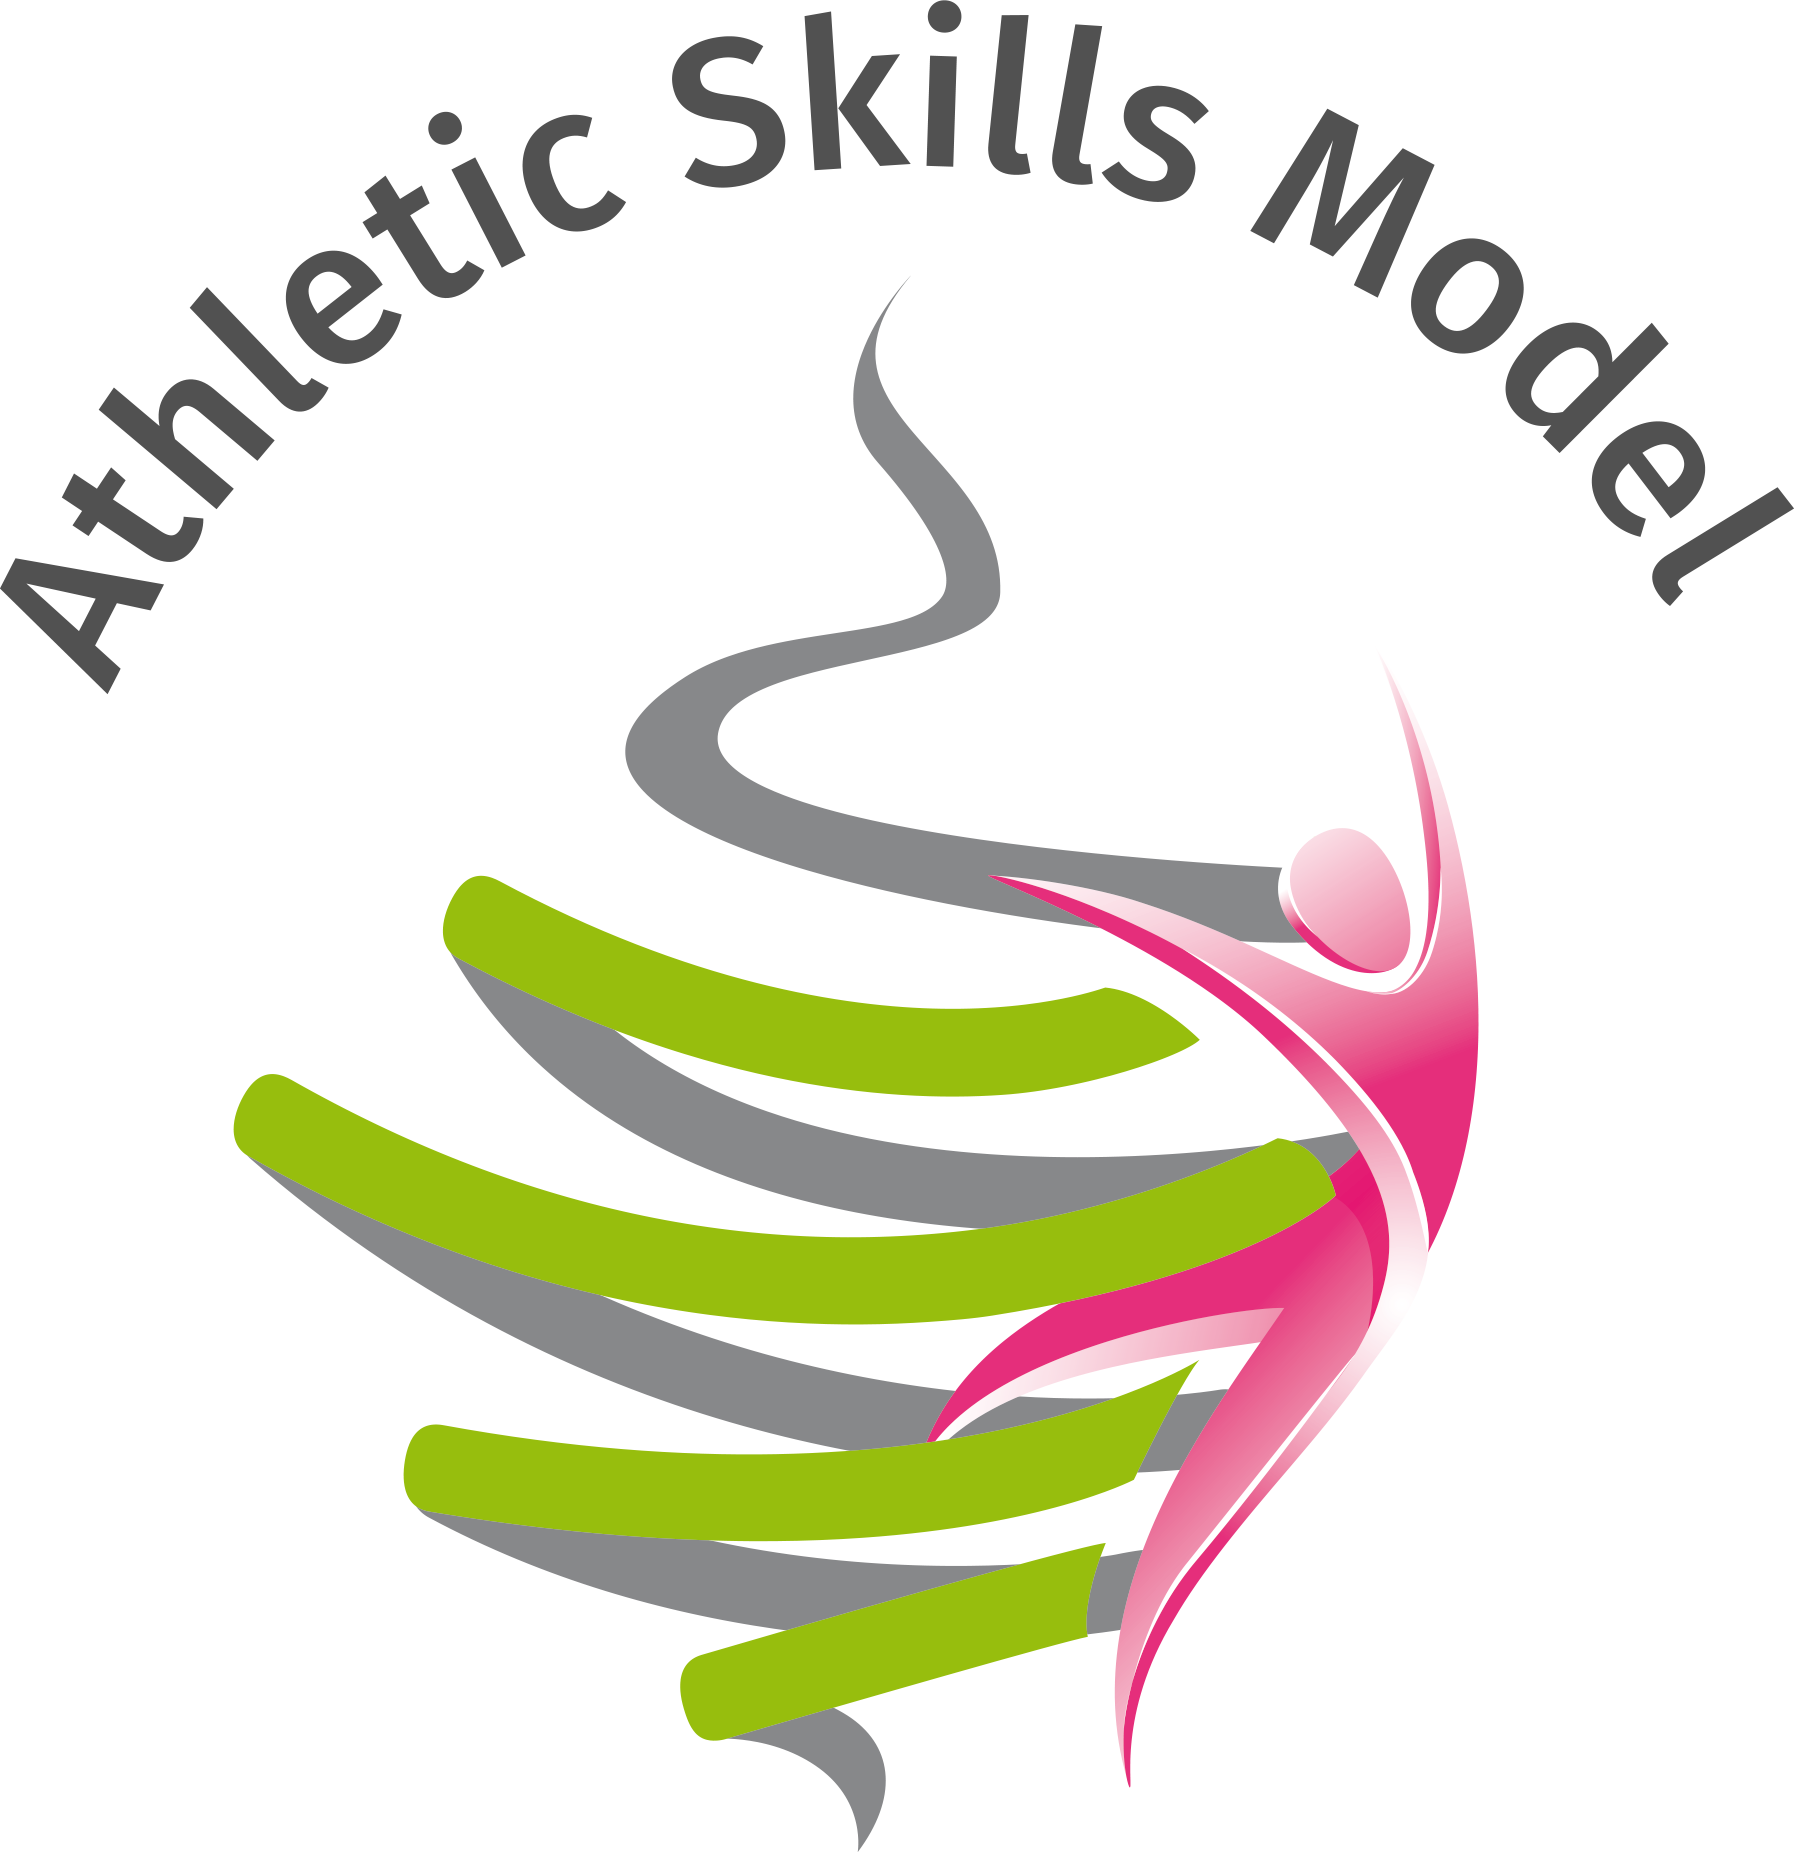 「The athletic skills model」の画像検索結果